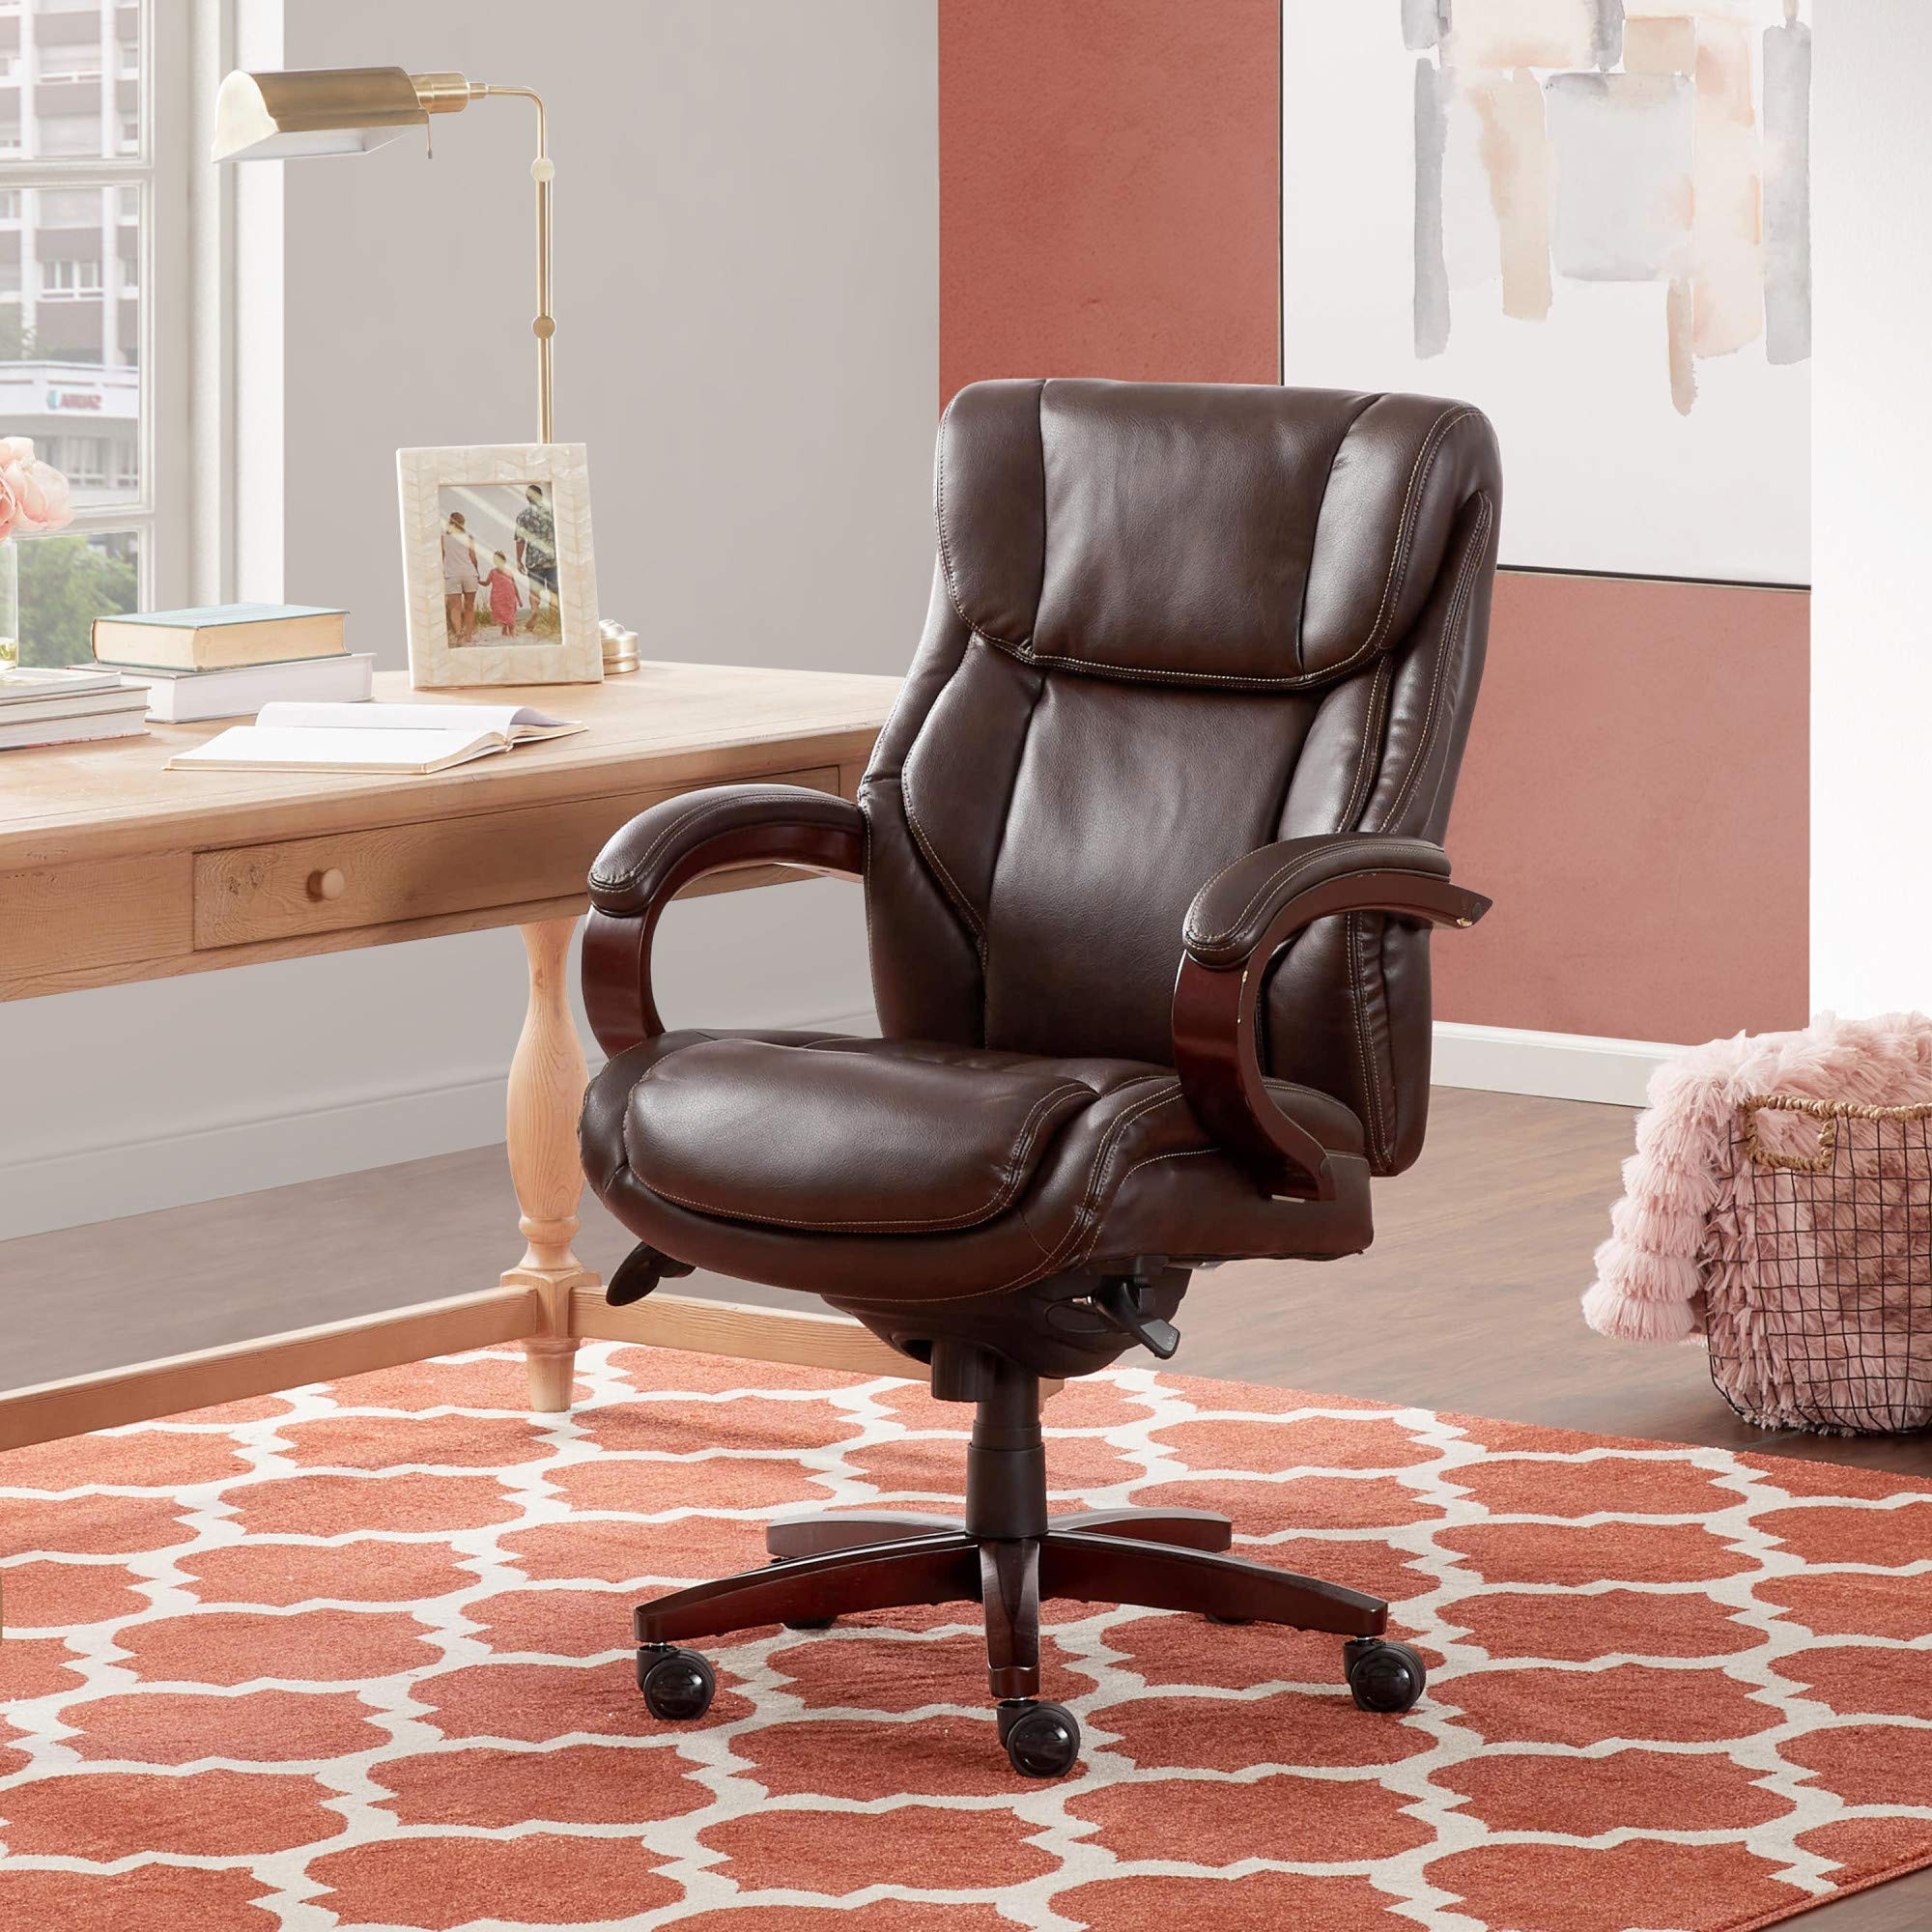 La-Z-Boy Bellamy Executive Bonded Leather Office Chair - Coffee (Brown) by La-Z-Boy